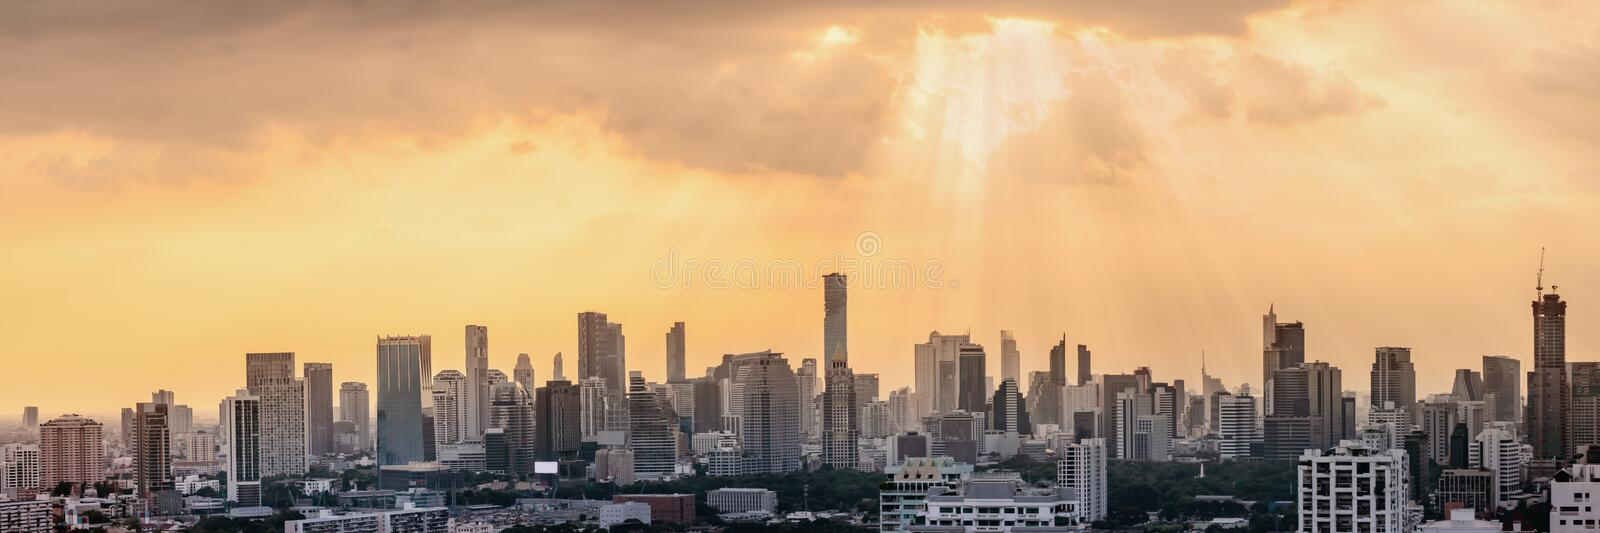 Panorama cityscape scenery of business and financial center of Bangkok the capital city of Thailand royalty free stock images